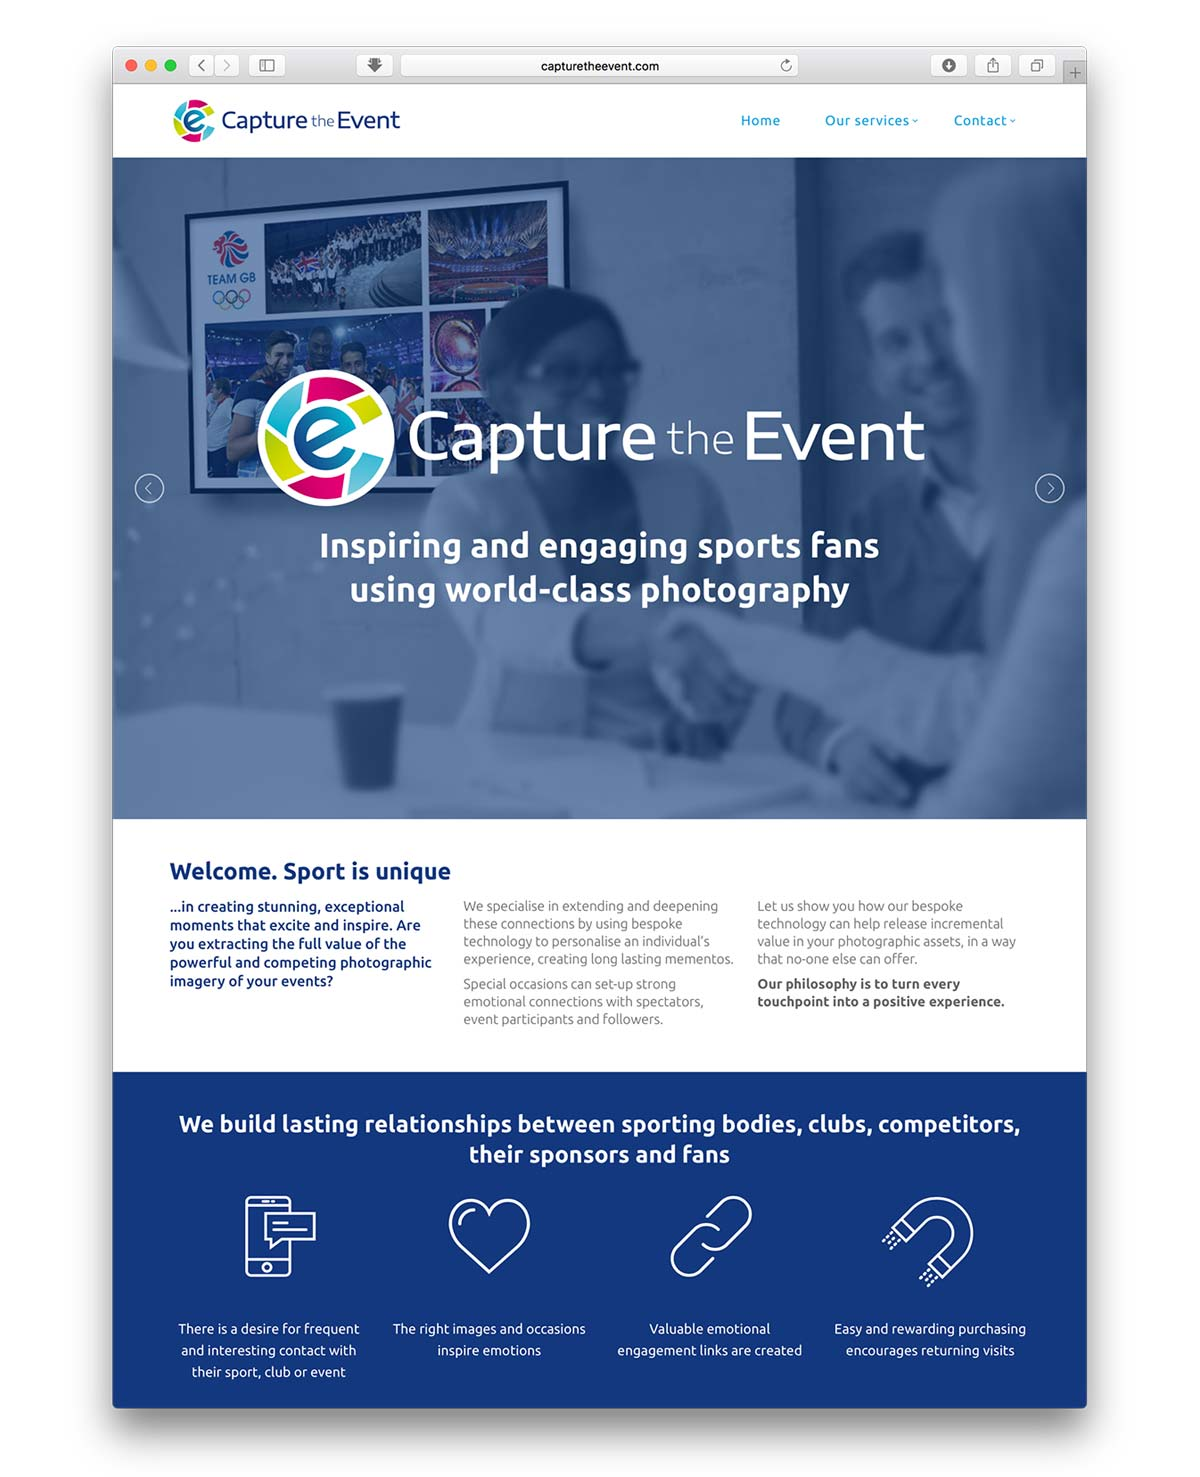 Capture the Event website design